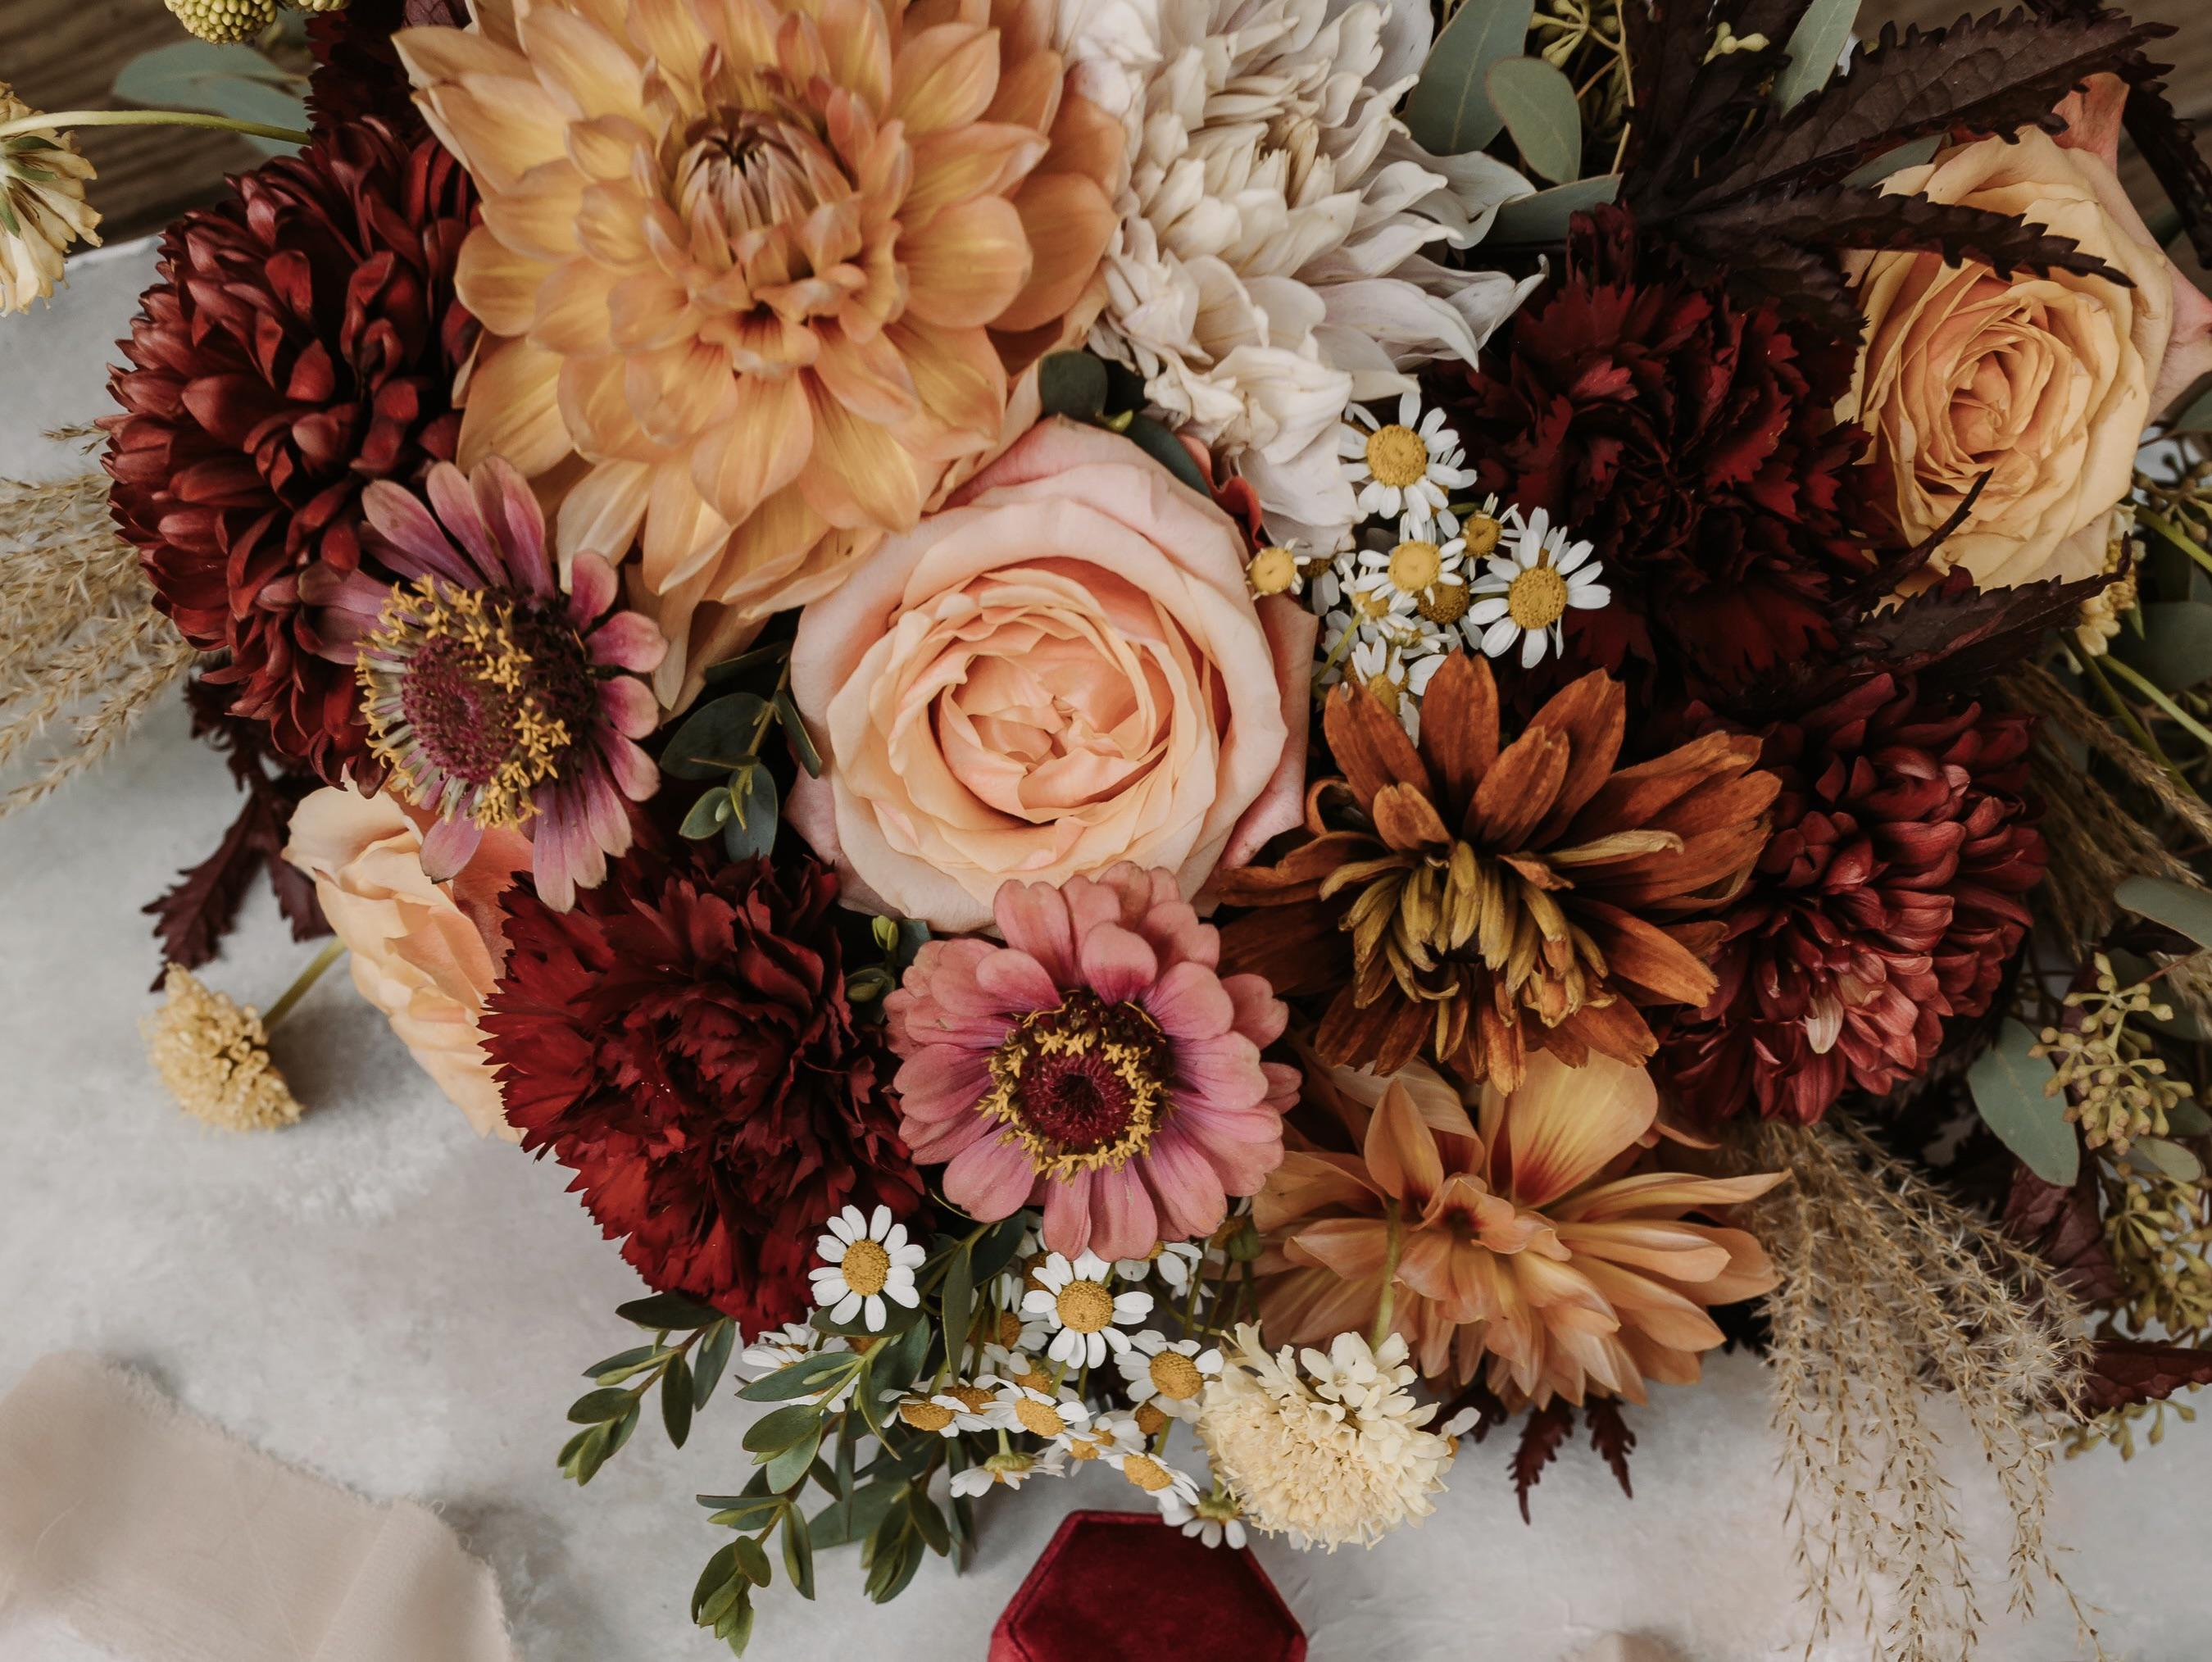 Browse flowers prices, photos and 29 village florist. Dedicated To All Things Floral